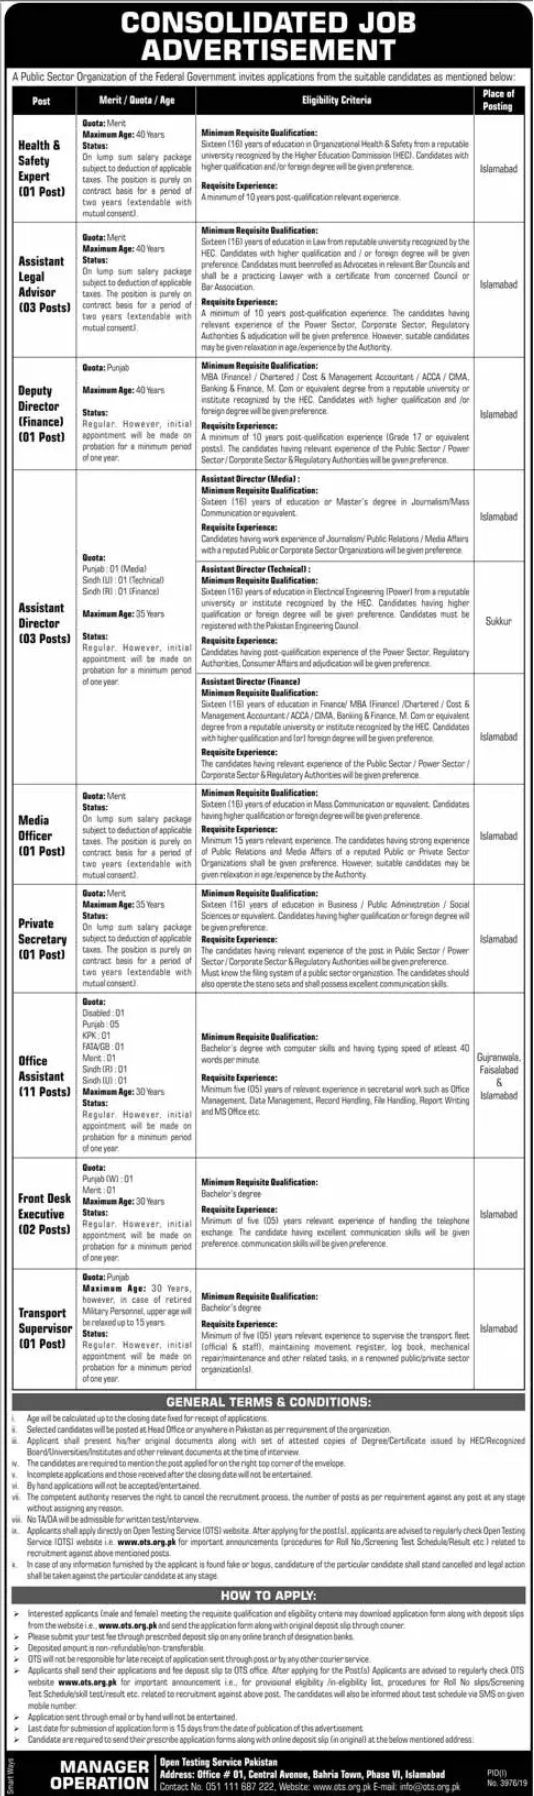 Public Sector Organization Government Of Pakistan Jobs 2020 OTS Application Form Download